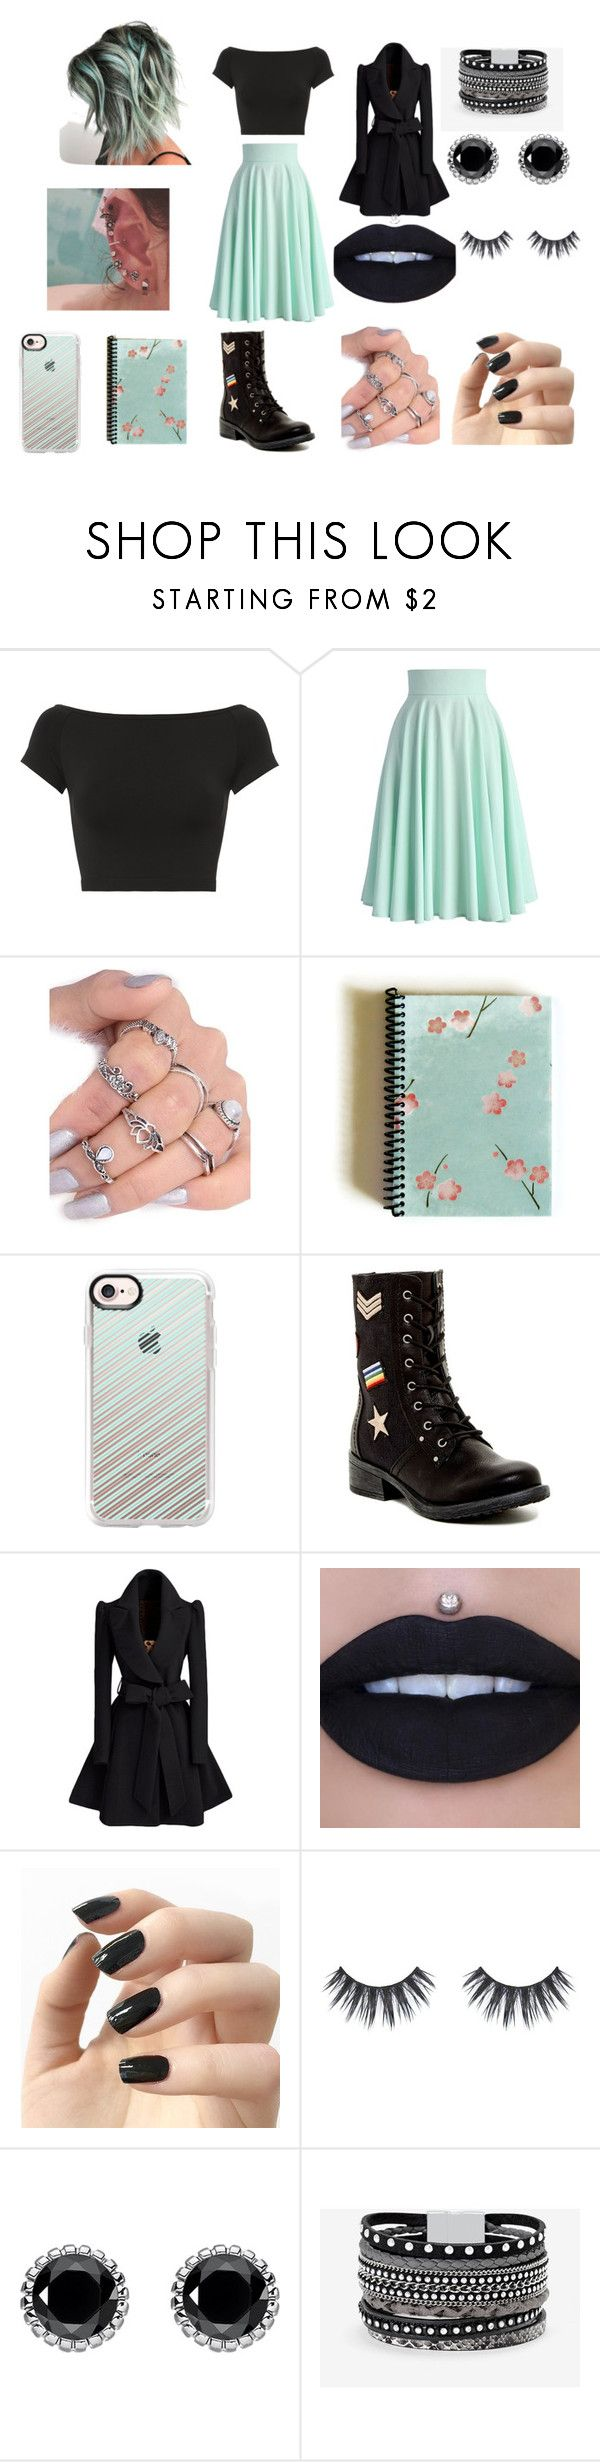 """""""pixie"""" by kikiluv05 on Polyvore featuring Helmut Lang, Chicwish, Casetify, MIA, Incoco, Thomas Sabo and White House Black Market"""